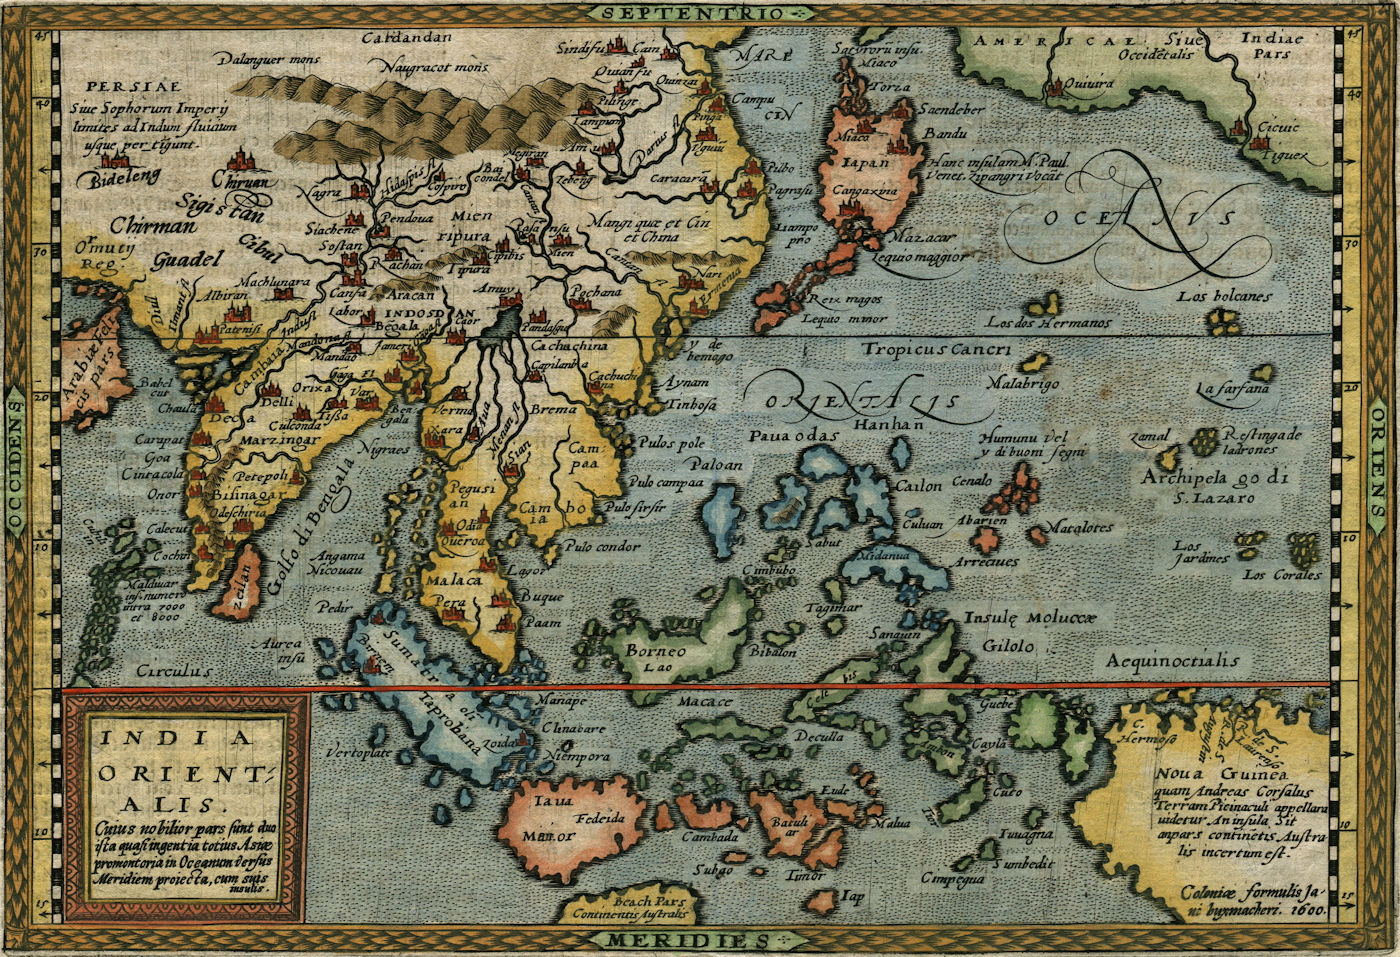 An early map of Southeast Asia by Matthias Quad (Cologne, 1600, collection Juan José Morales)